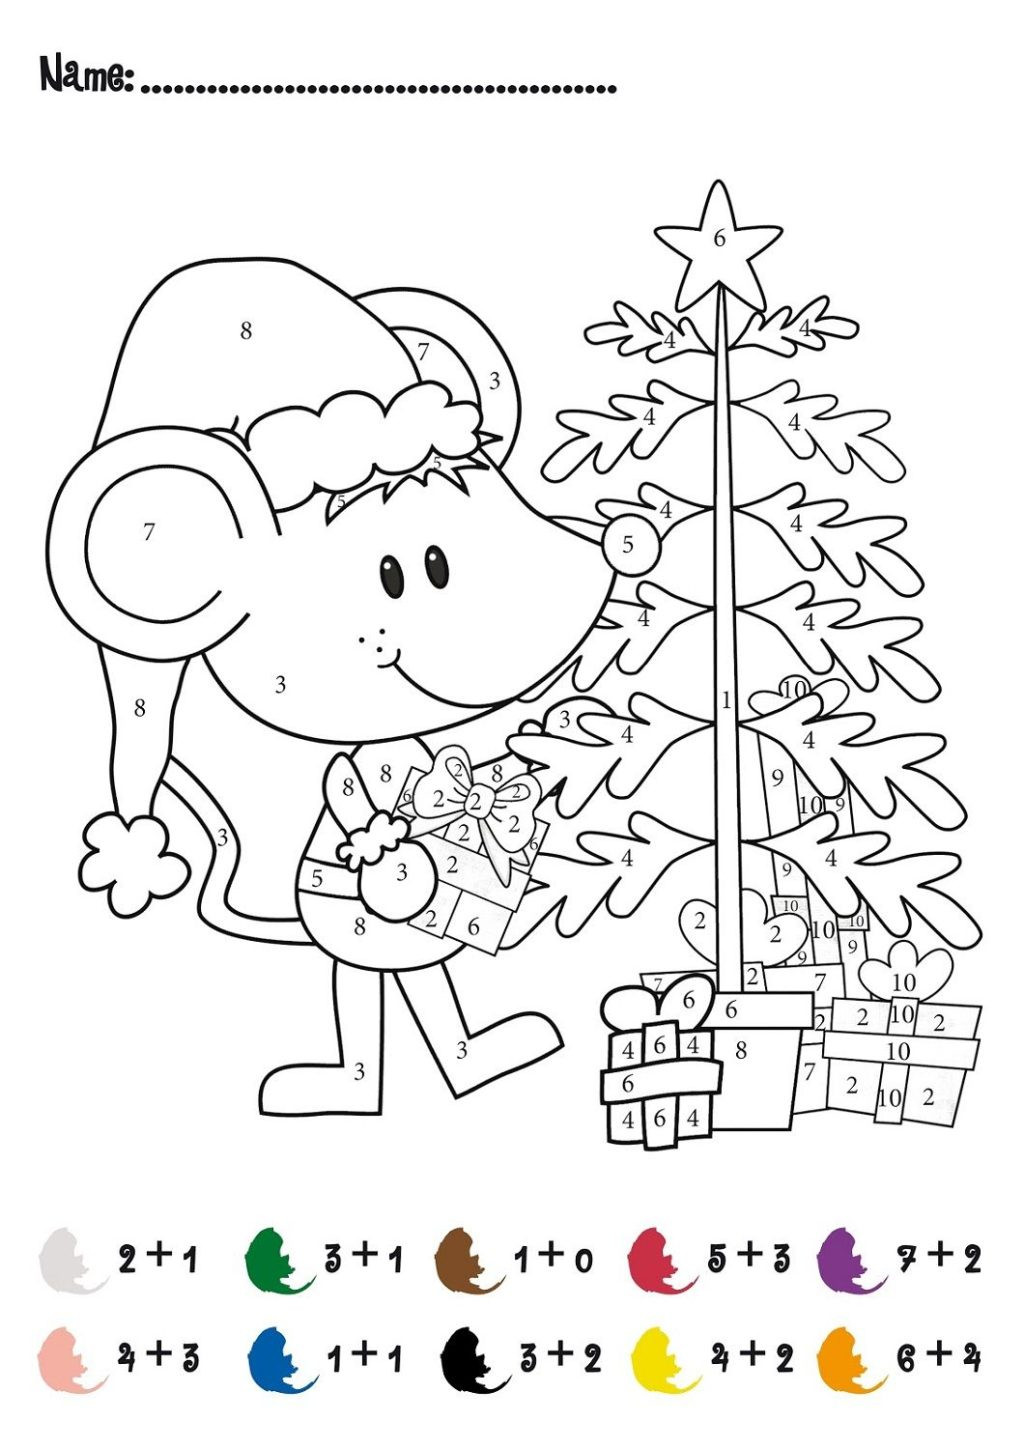 Math Coloring Pages 2nd Grade Worksheet Gymnastics Math Coloring Pages 2nd Grade